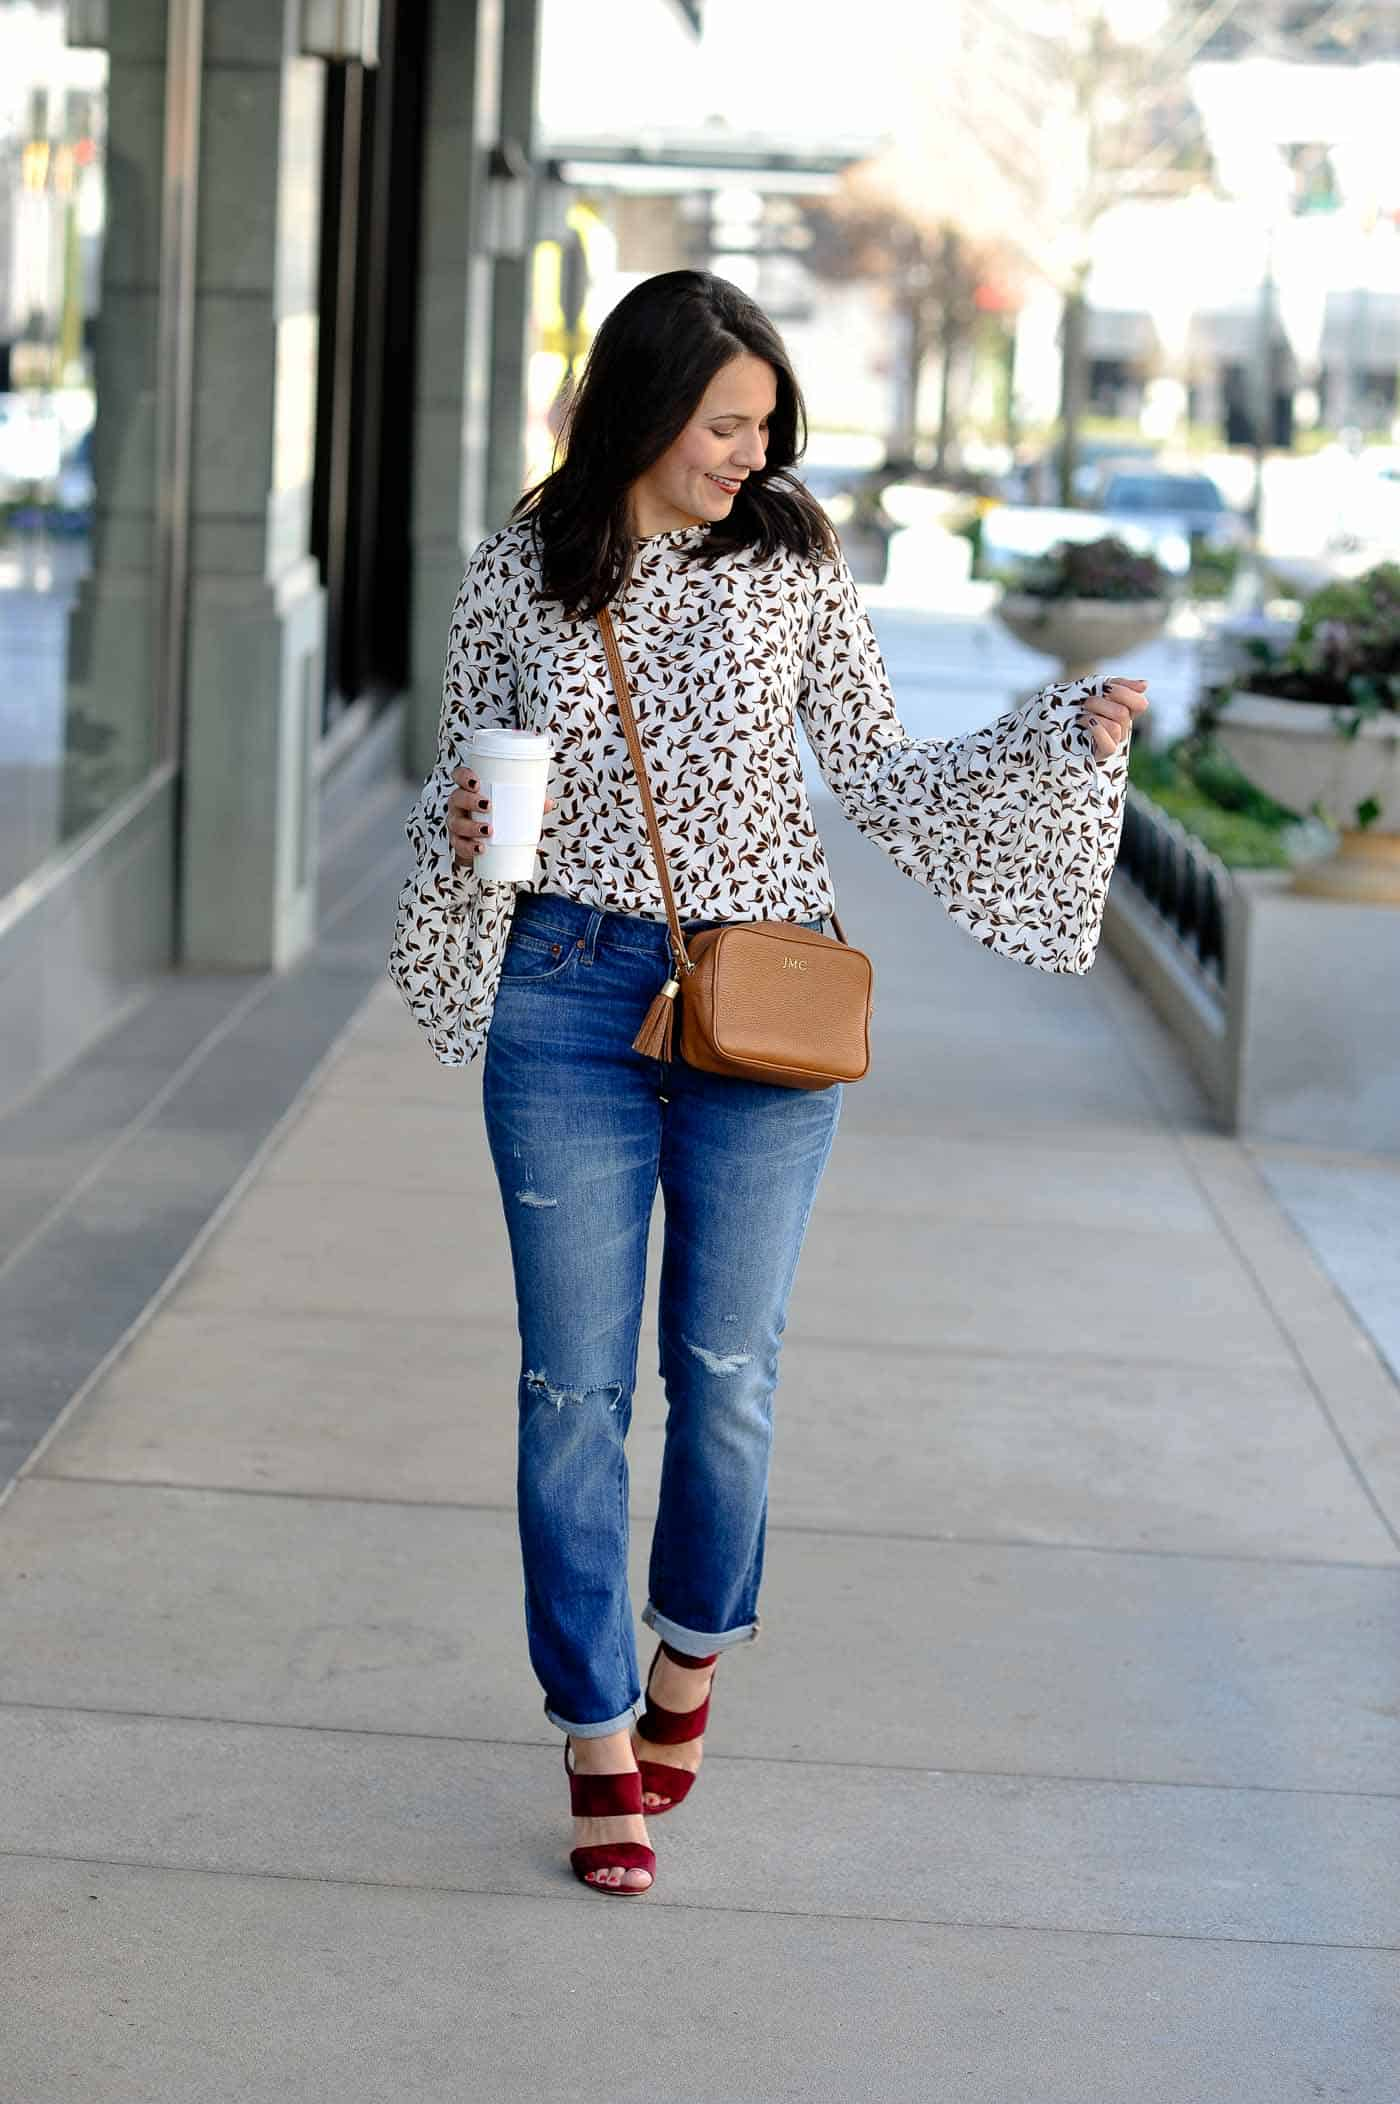 How To Style A Bell Sleeve Top, fall outfits - My Style Vita @mystylevita